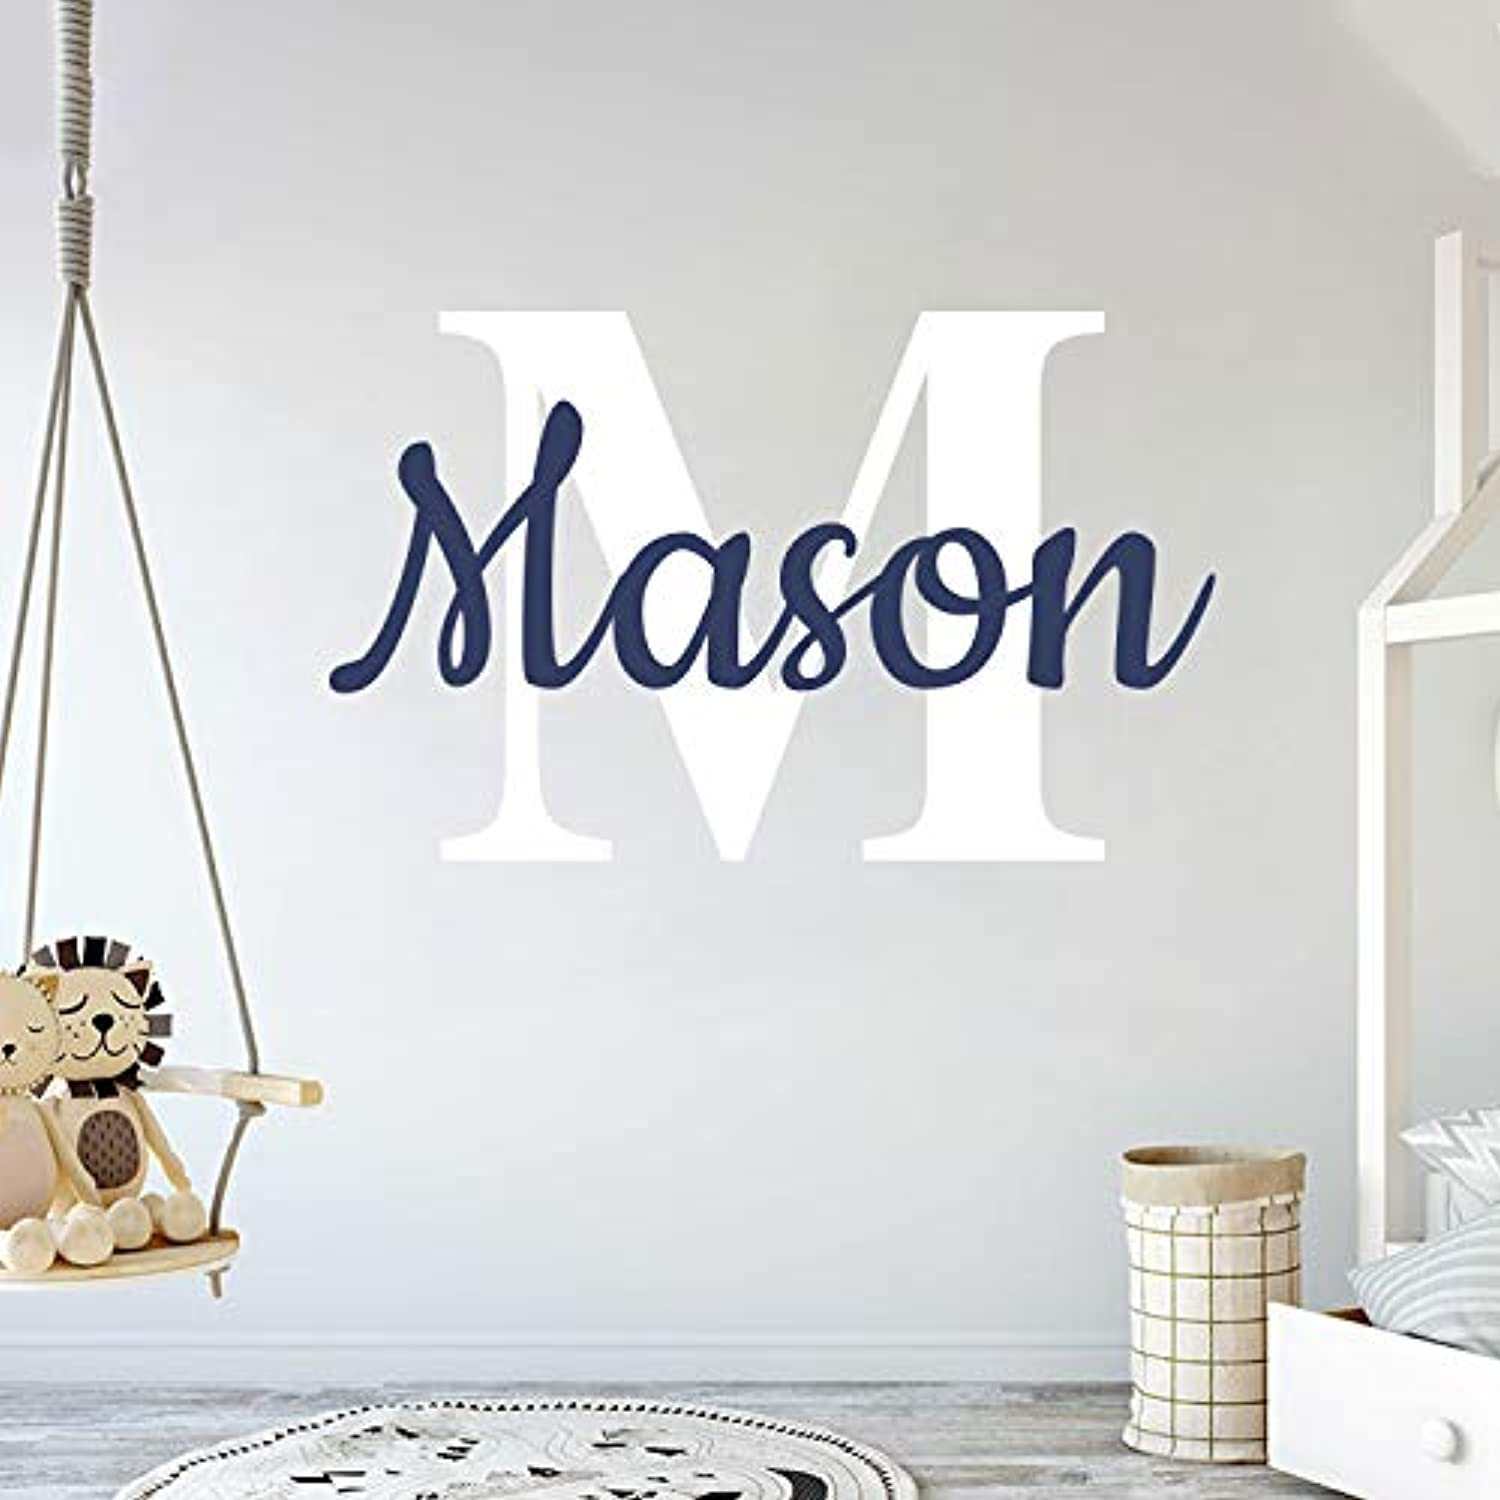 "Classier: Buy cryptonite Custom Name & Initial - Prime Series - Baby Boy Girl Unisex - Wall Decal Nursery for Home Bedroom Children (Wide 40"" x 26"" Height)"